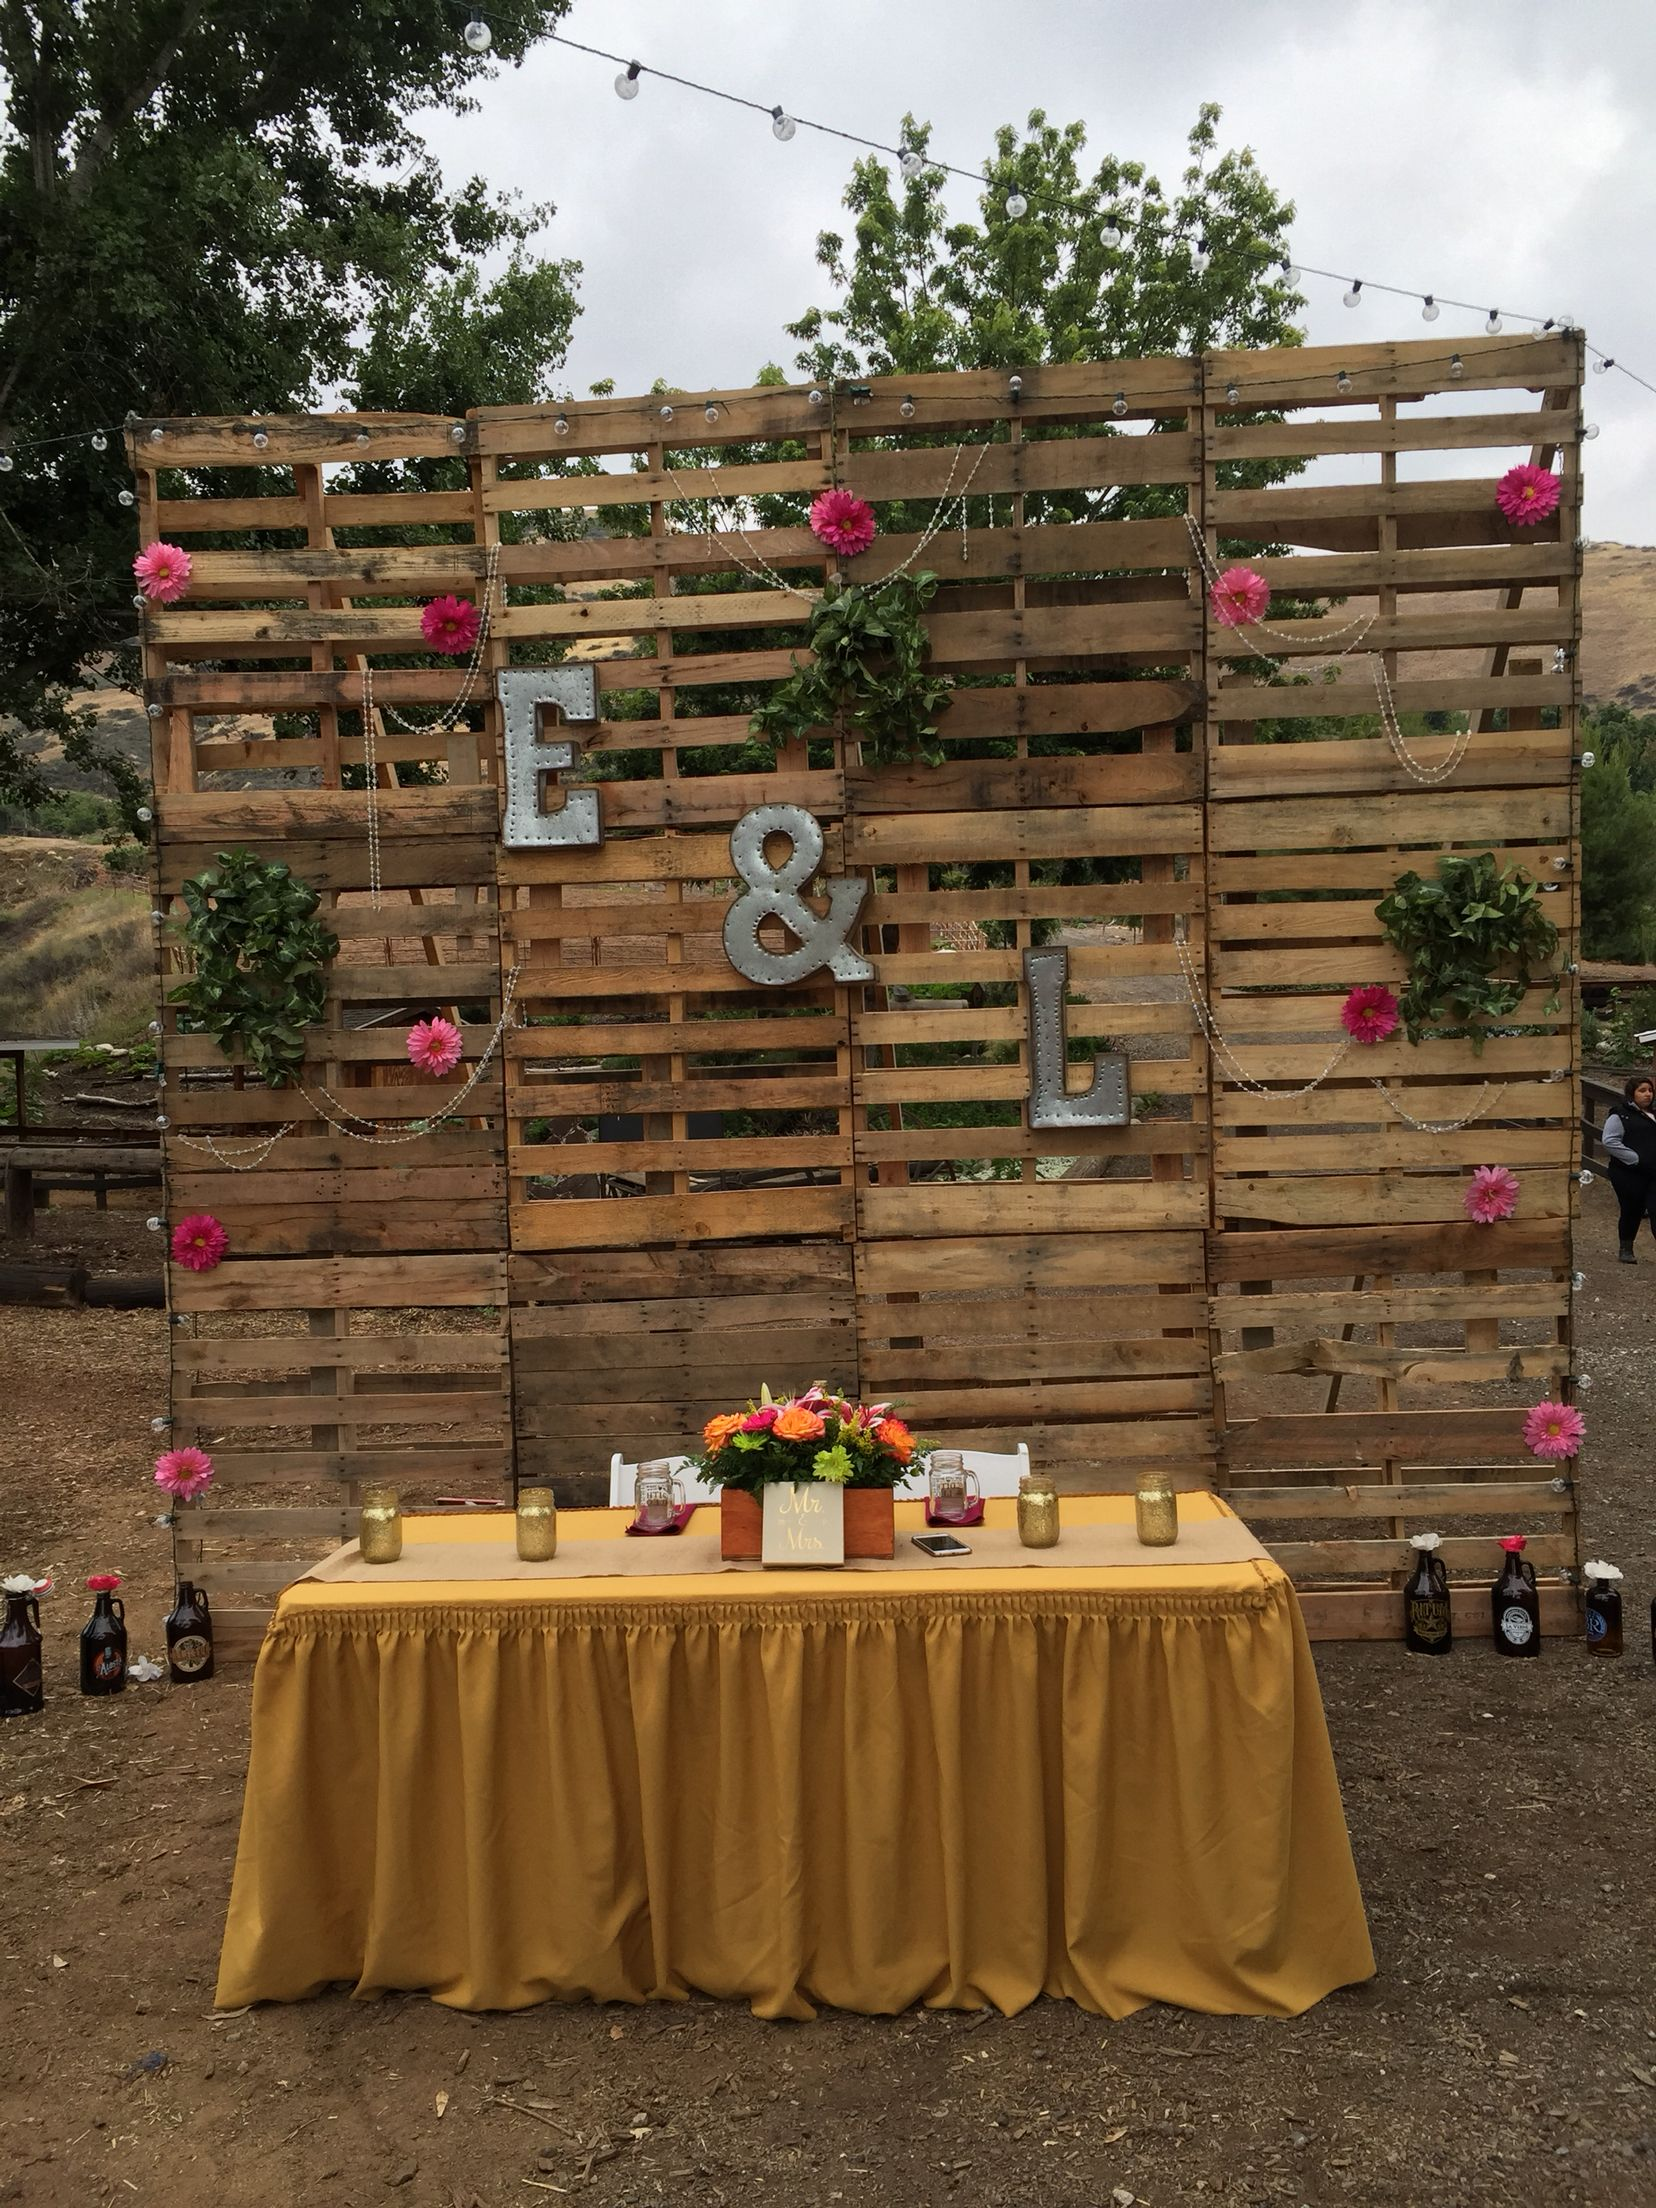 Pallet wood makes the perfect backdrop to any rustic wedding. Here are some amazing country barn reception decor that will look incredible!